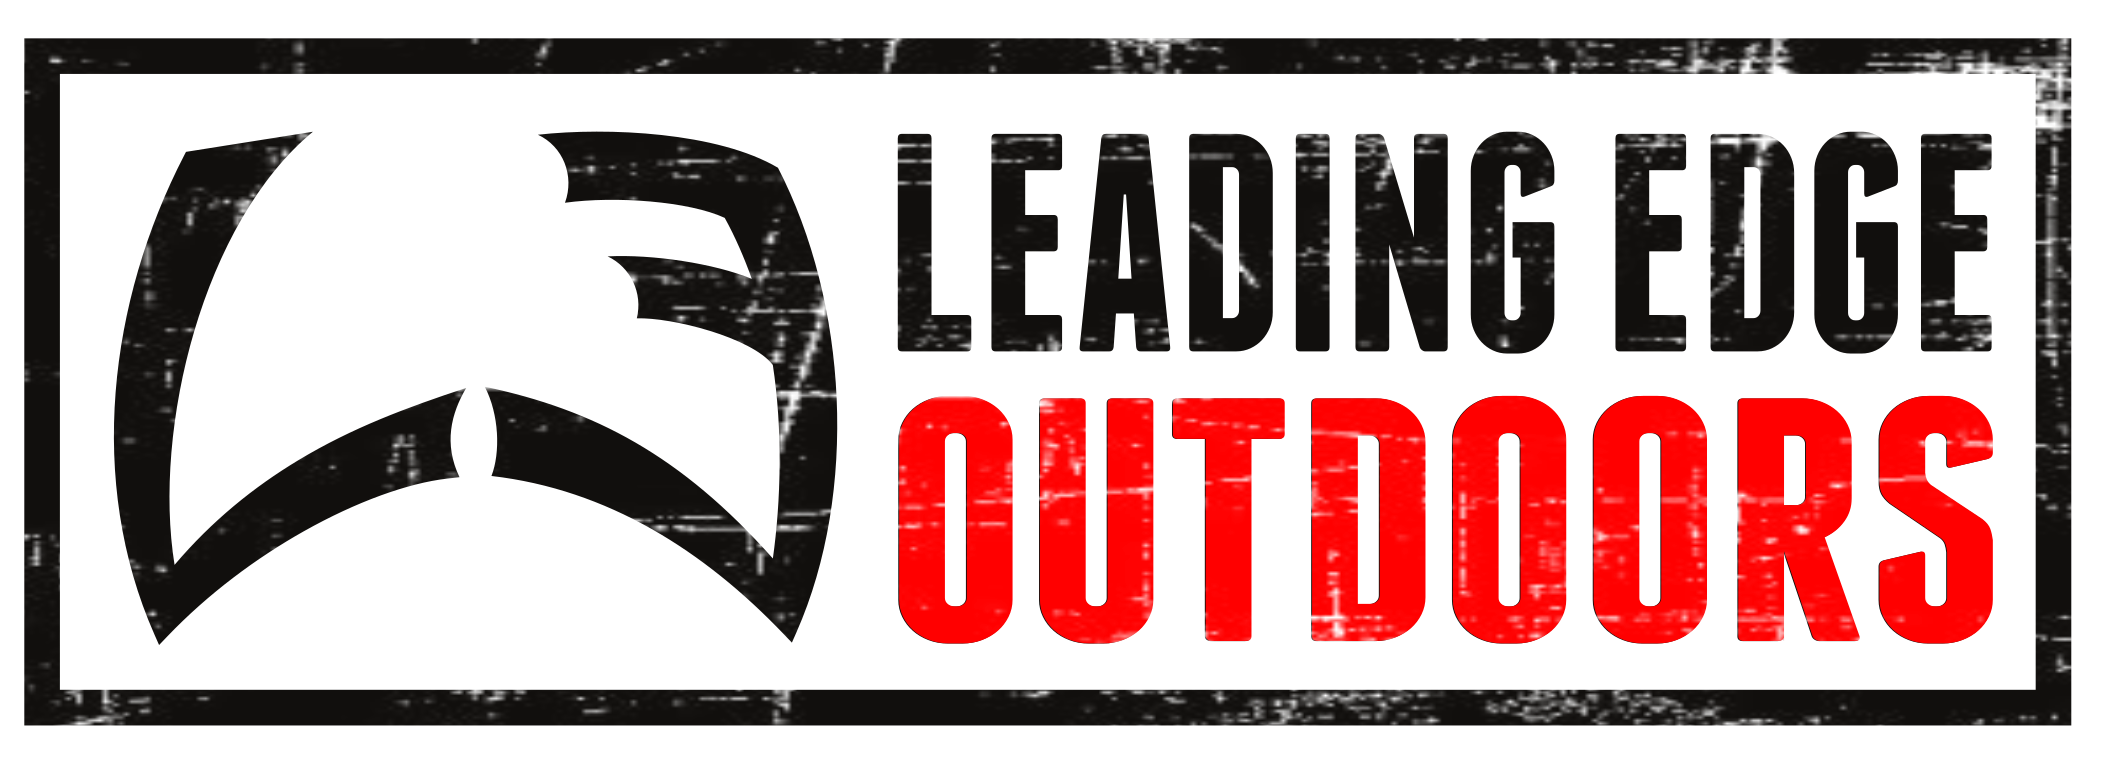 Leading Edge Outdoors